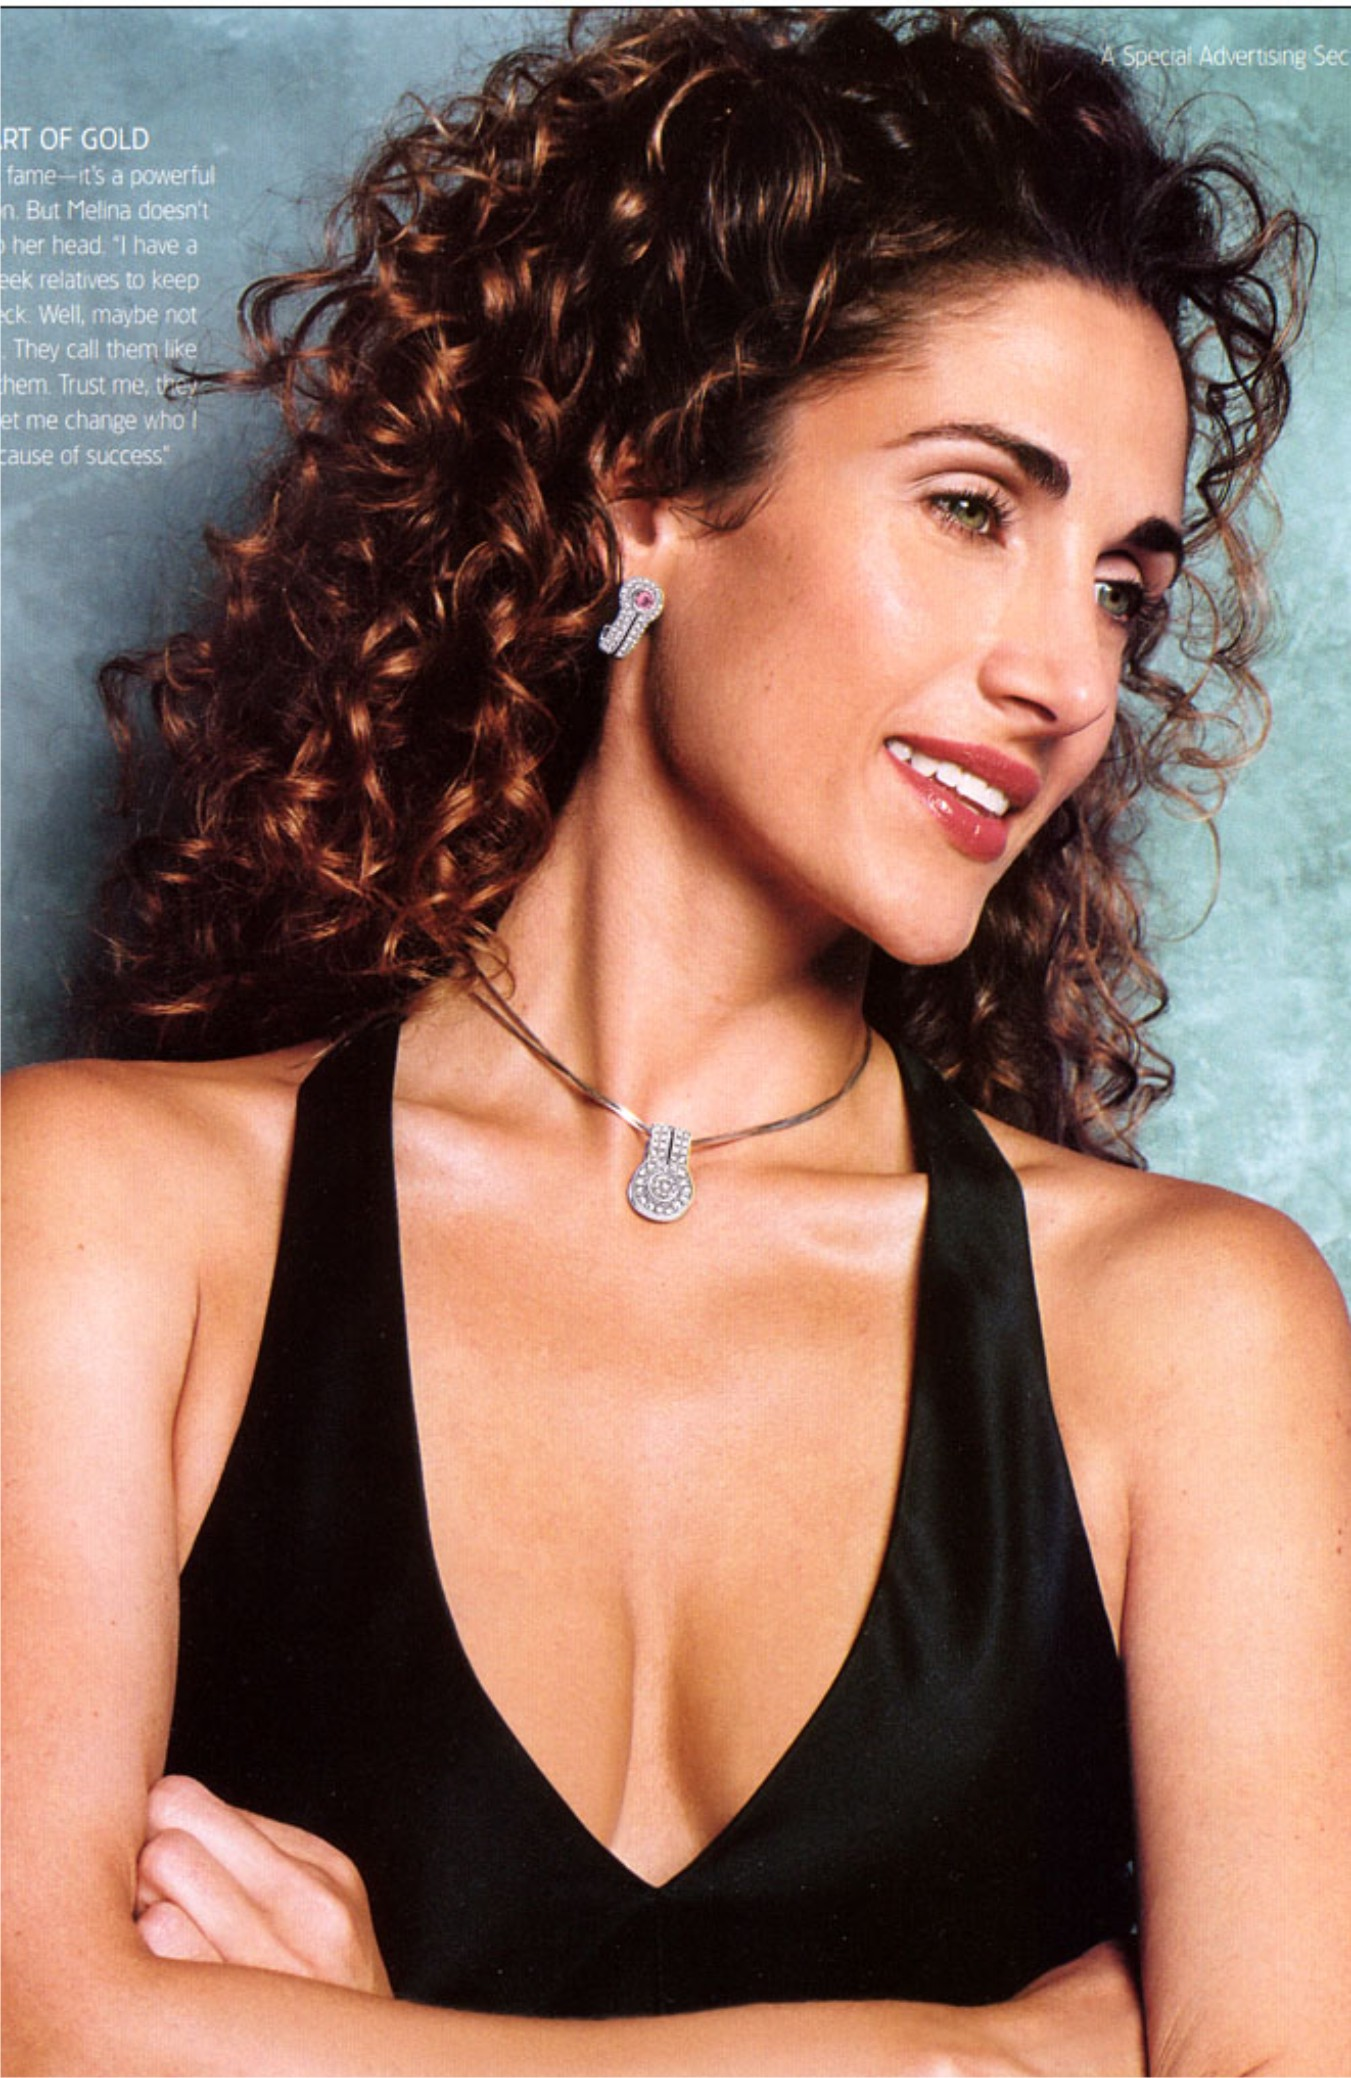 melina-kanakaredes-boobs